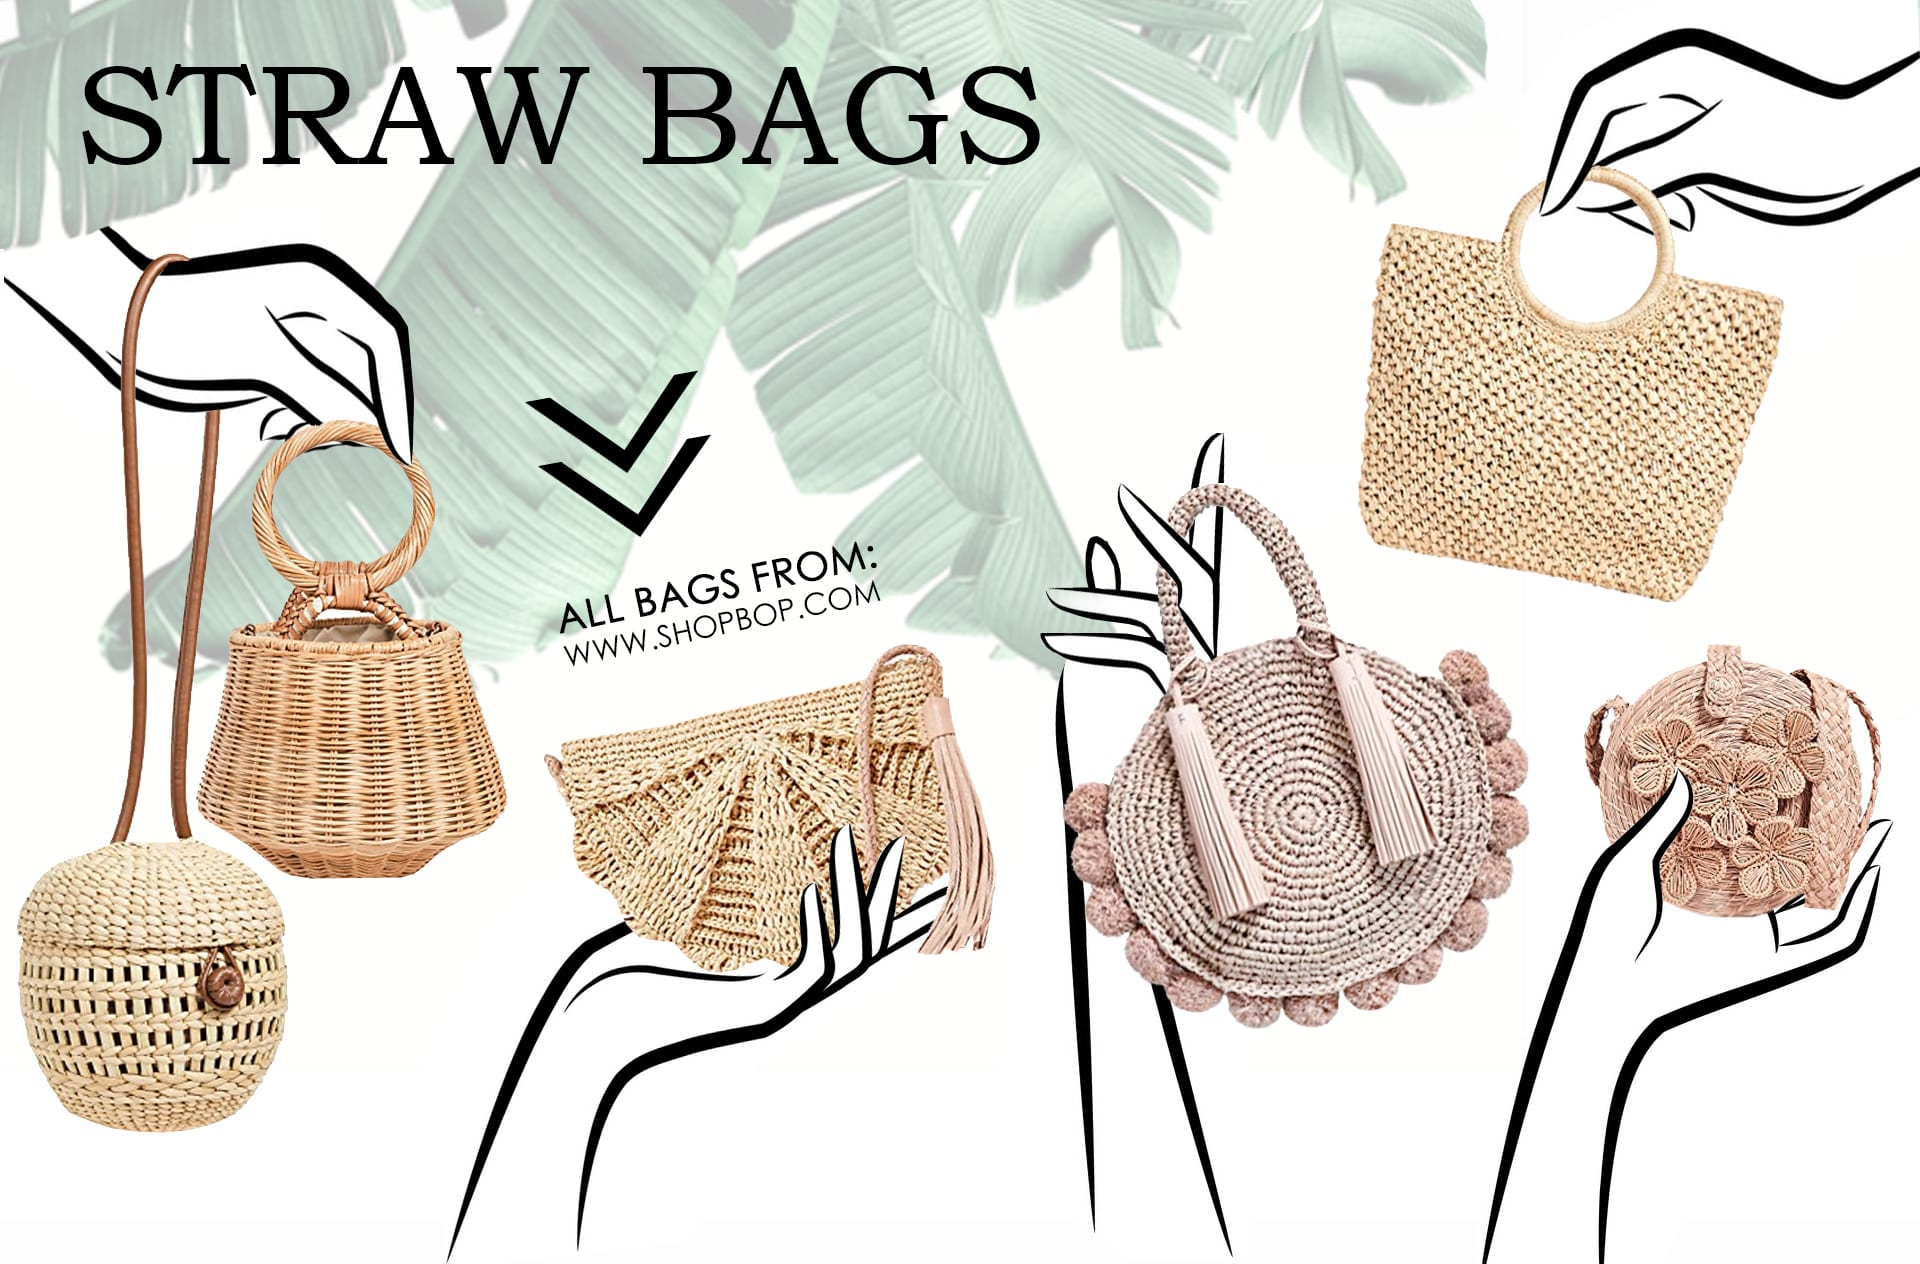 Straw Bags types of purses